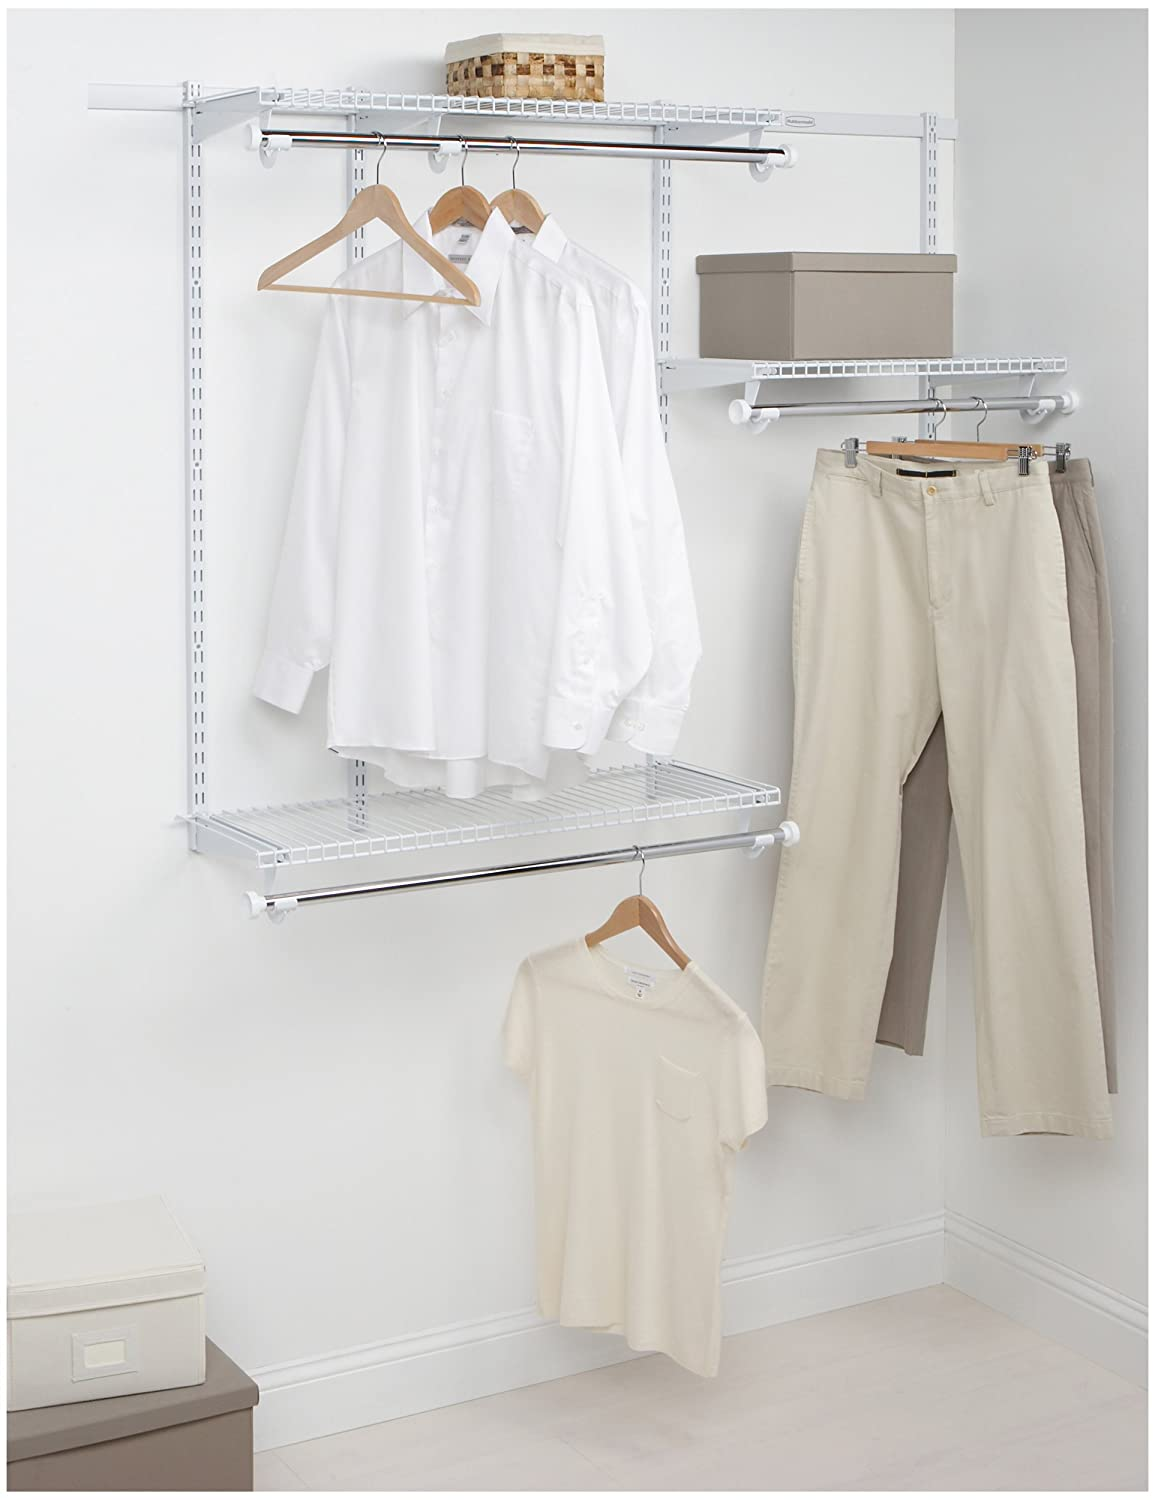 Amazon.com: Rubbermaid Configurations Custom Closet Starter Kit ...